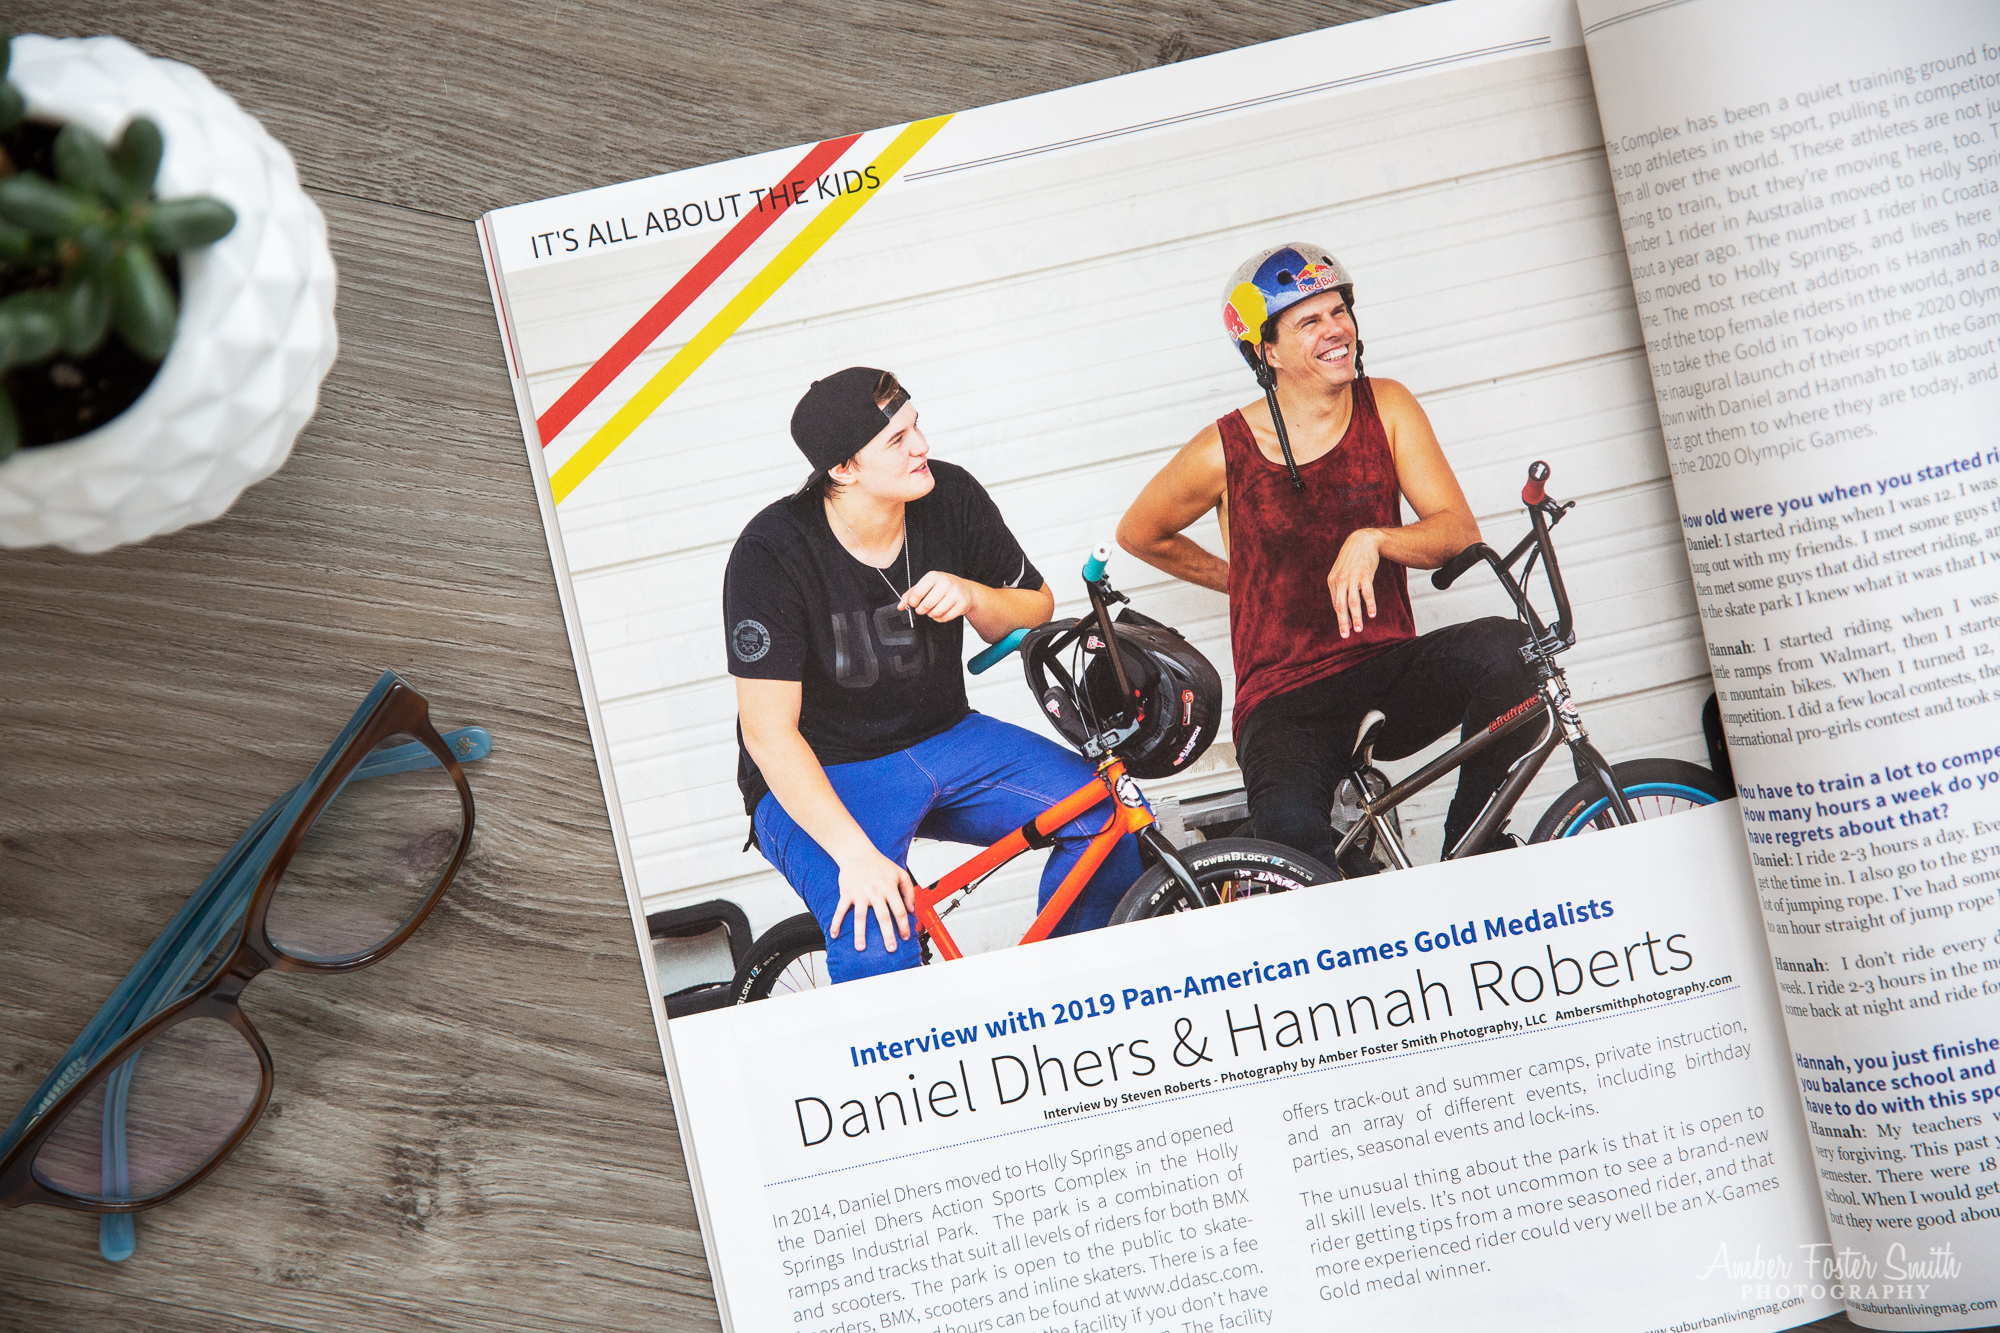 Magazine opened with pages showing two people on bikes